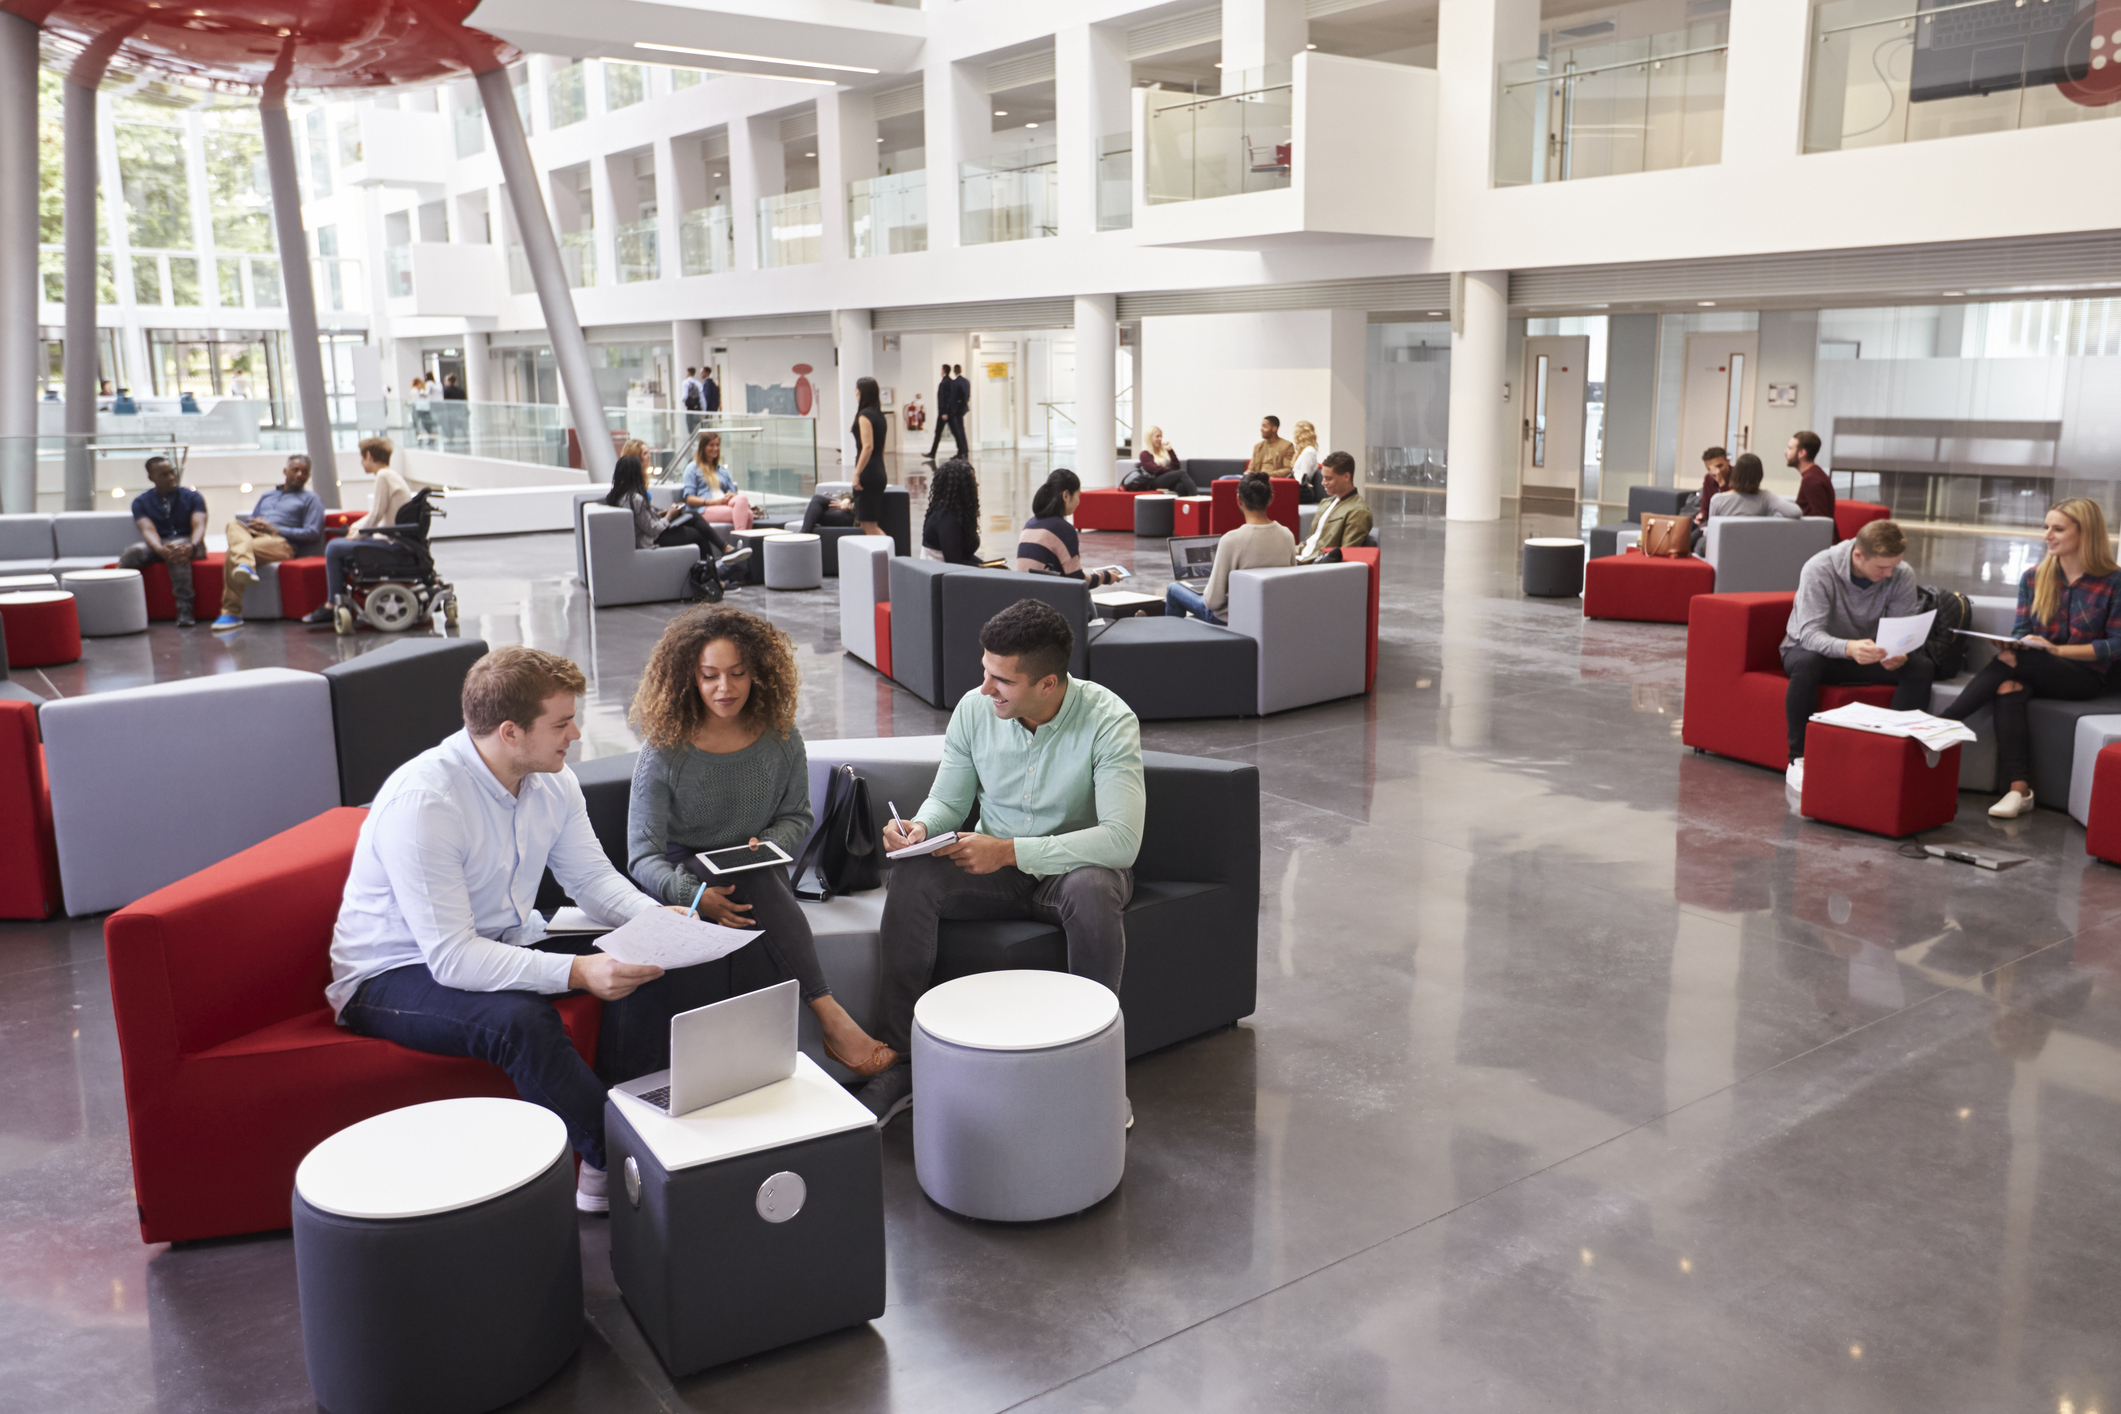 students-sitting-in-university-atrium-three-in-foregroundjpg